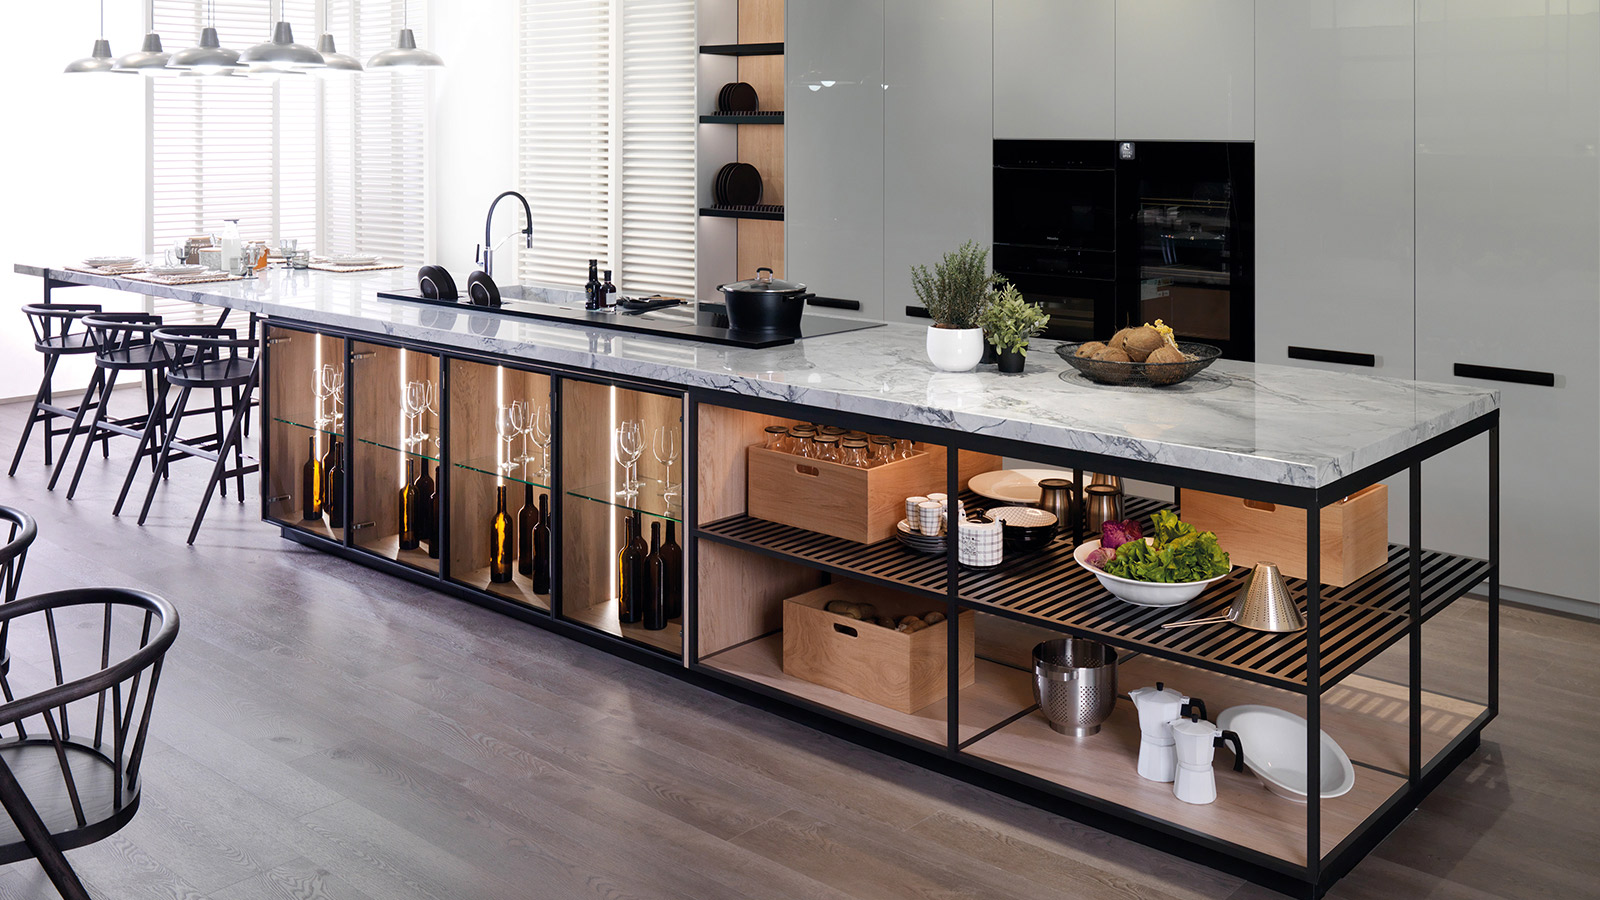 Gamadecor, leading national kitchen manufacturer